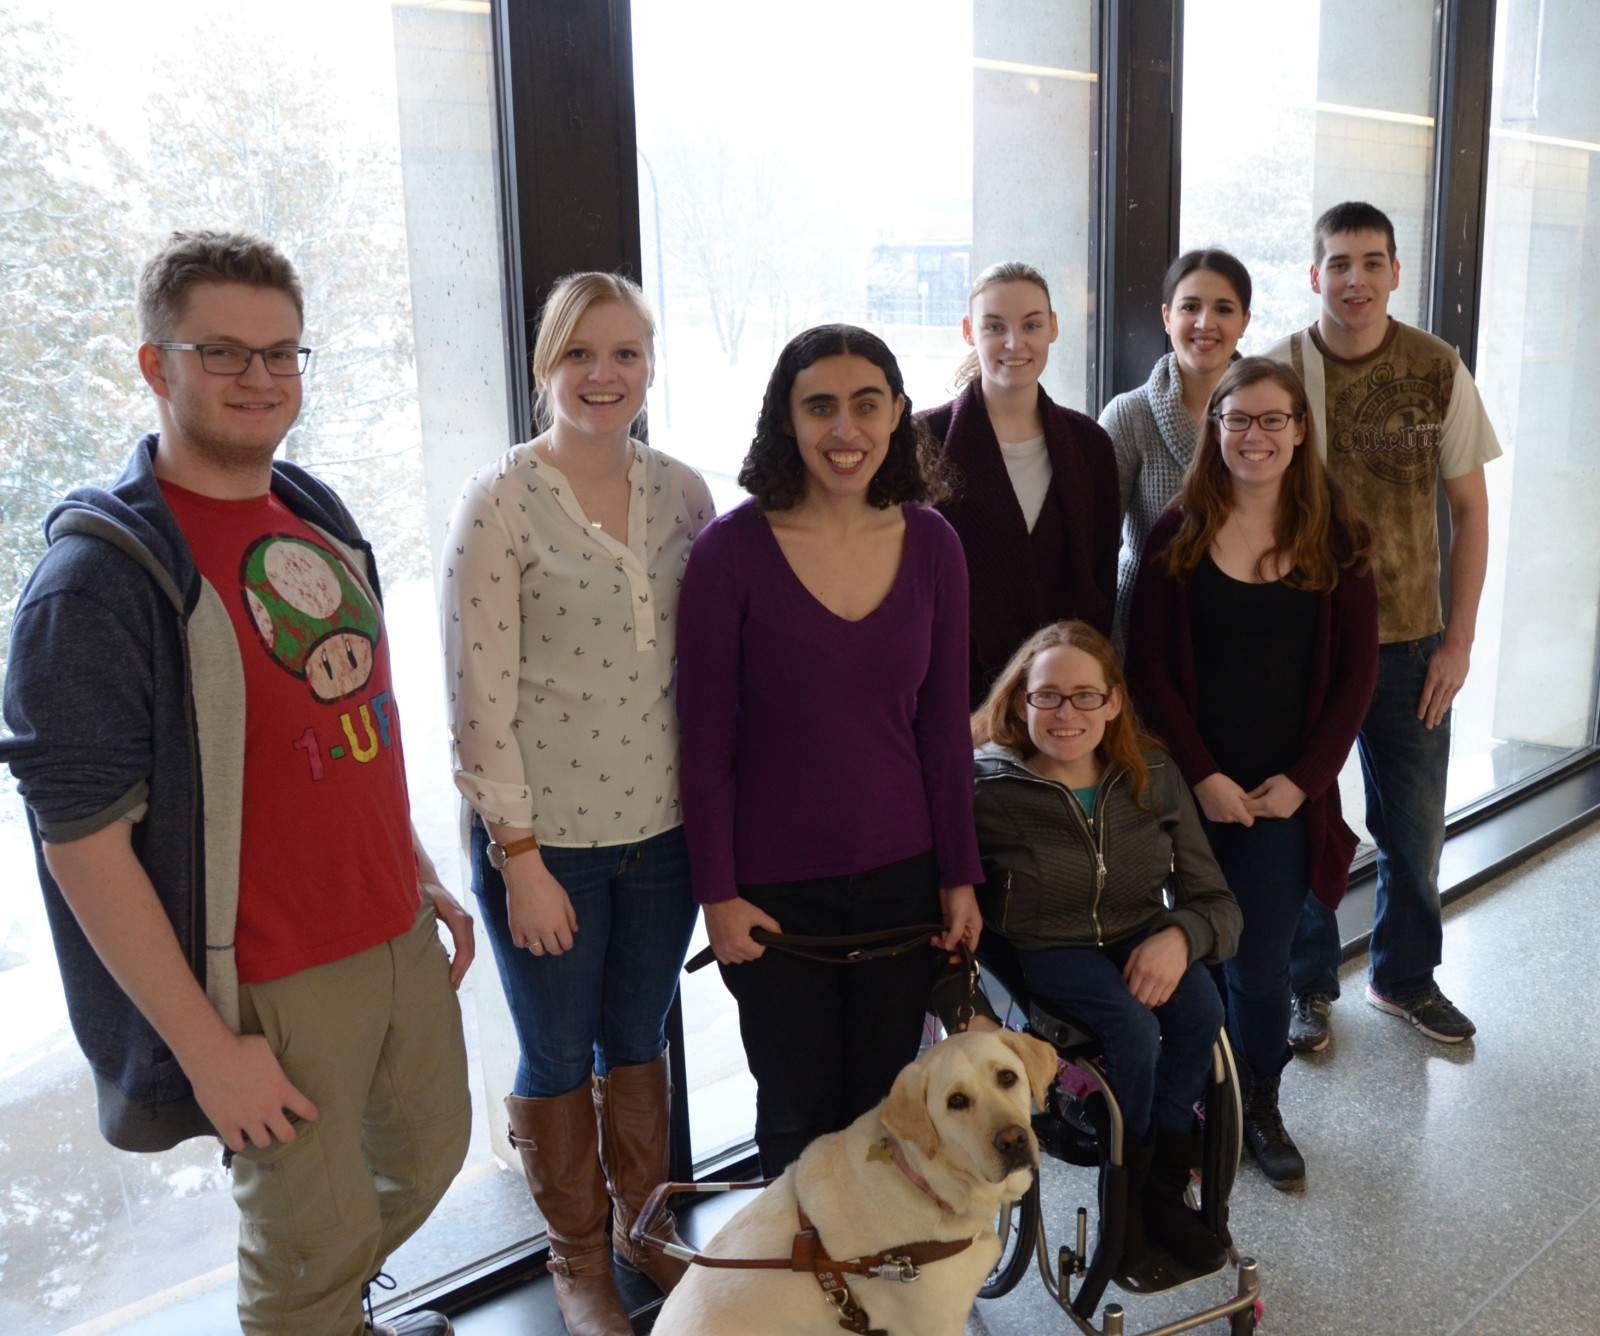 ABLE members (Front L-R): Founder and President Keely Grossman with her service dog/honourary ABLE co-president, Vice-President Jessica Lewis and Alanna Kitching. (Back L-R): Dylan Pineo, Jessica Koppers (Secretary), Cara McAlister, Raquel Welby and Matt Barry (Treasurer).